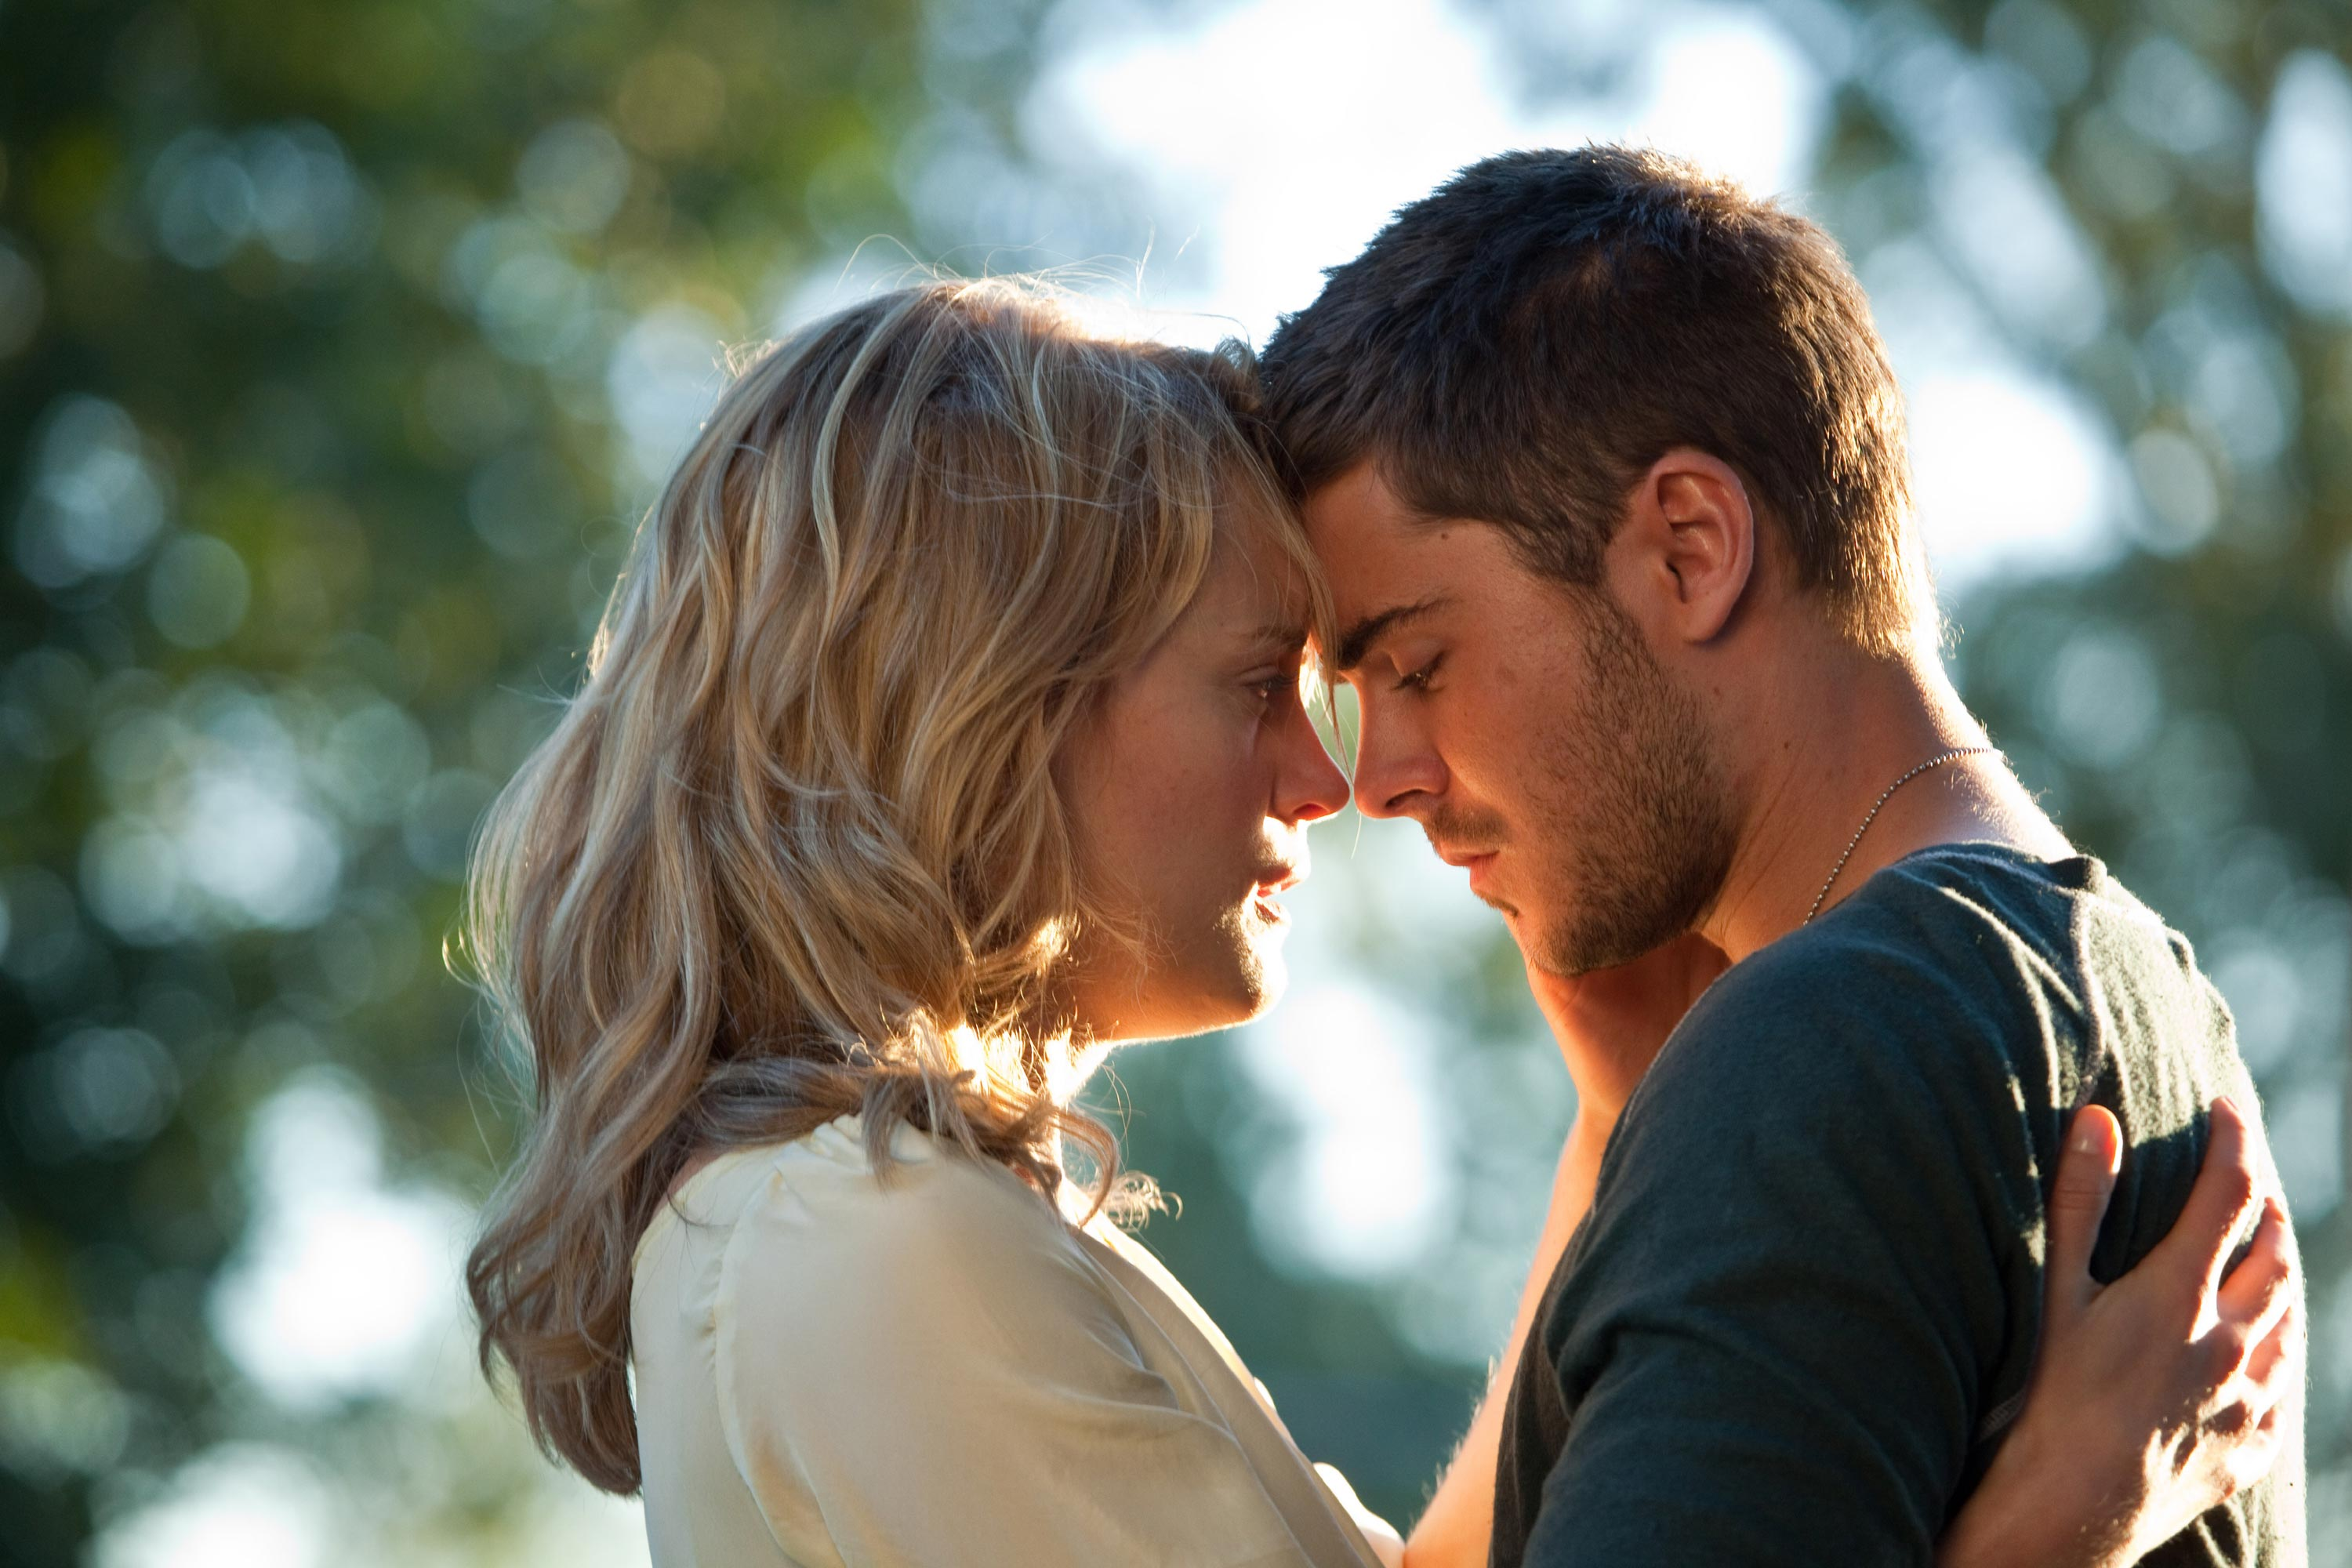 zac-efron-and-taylor-schilling-the-lucky-one.jpg